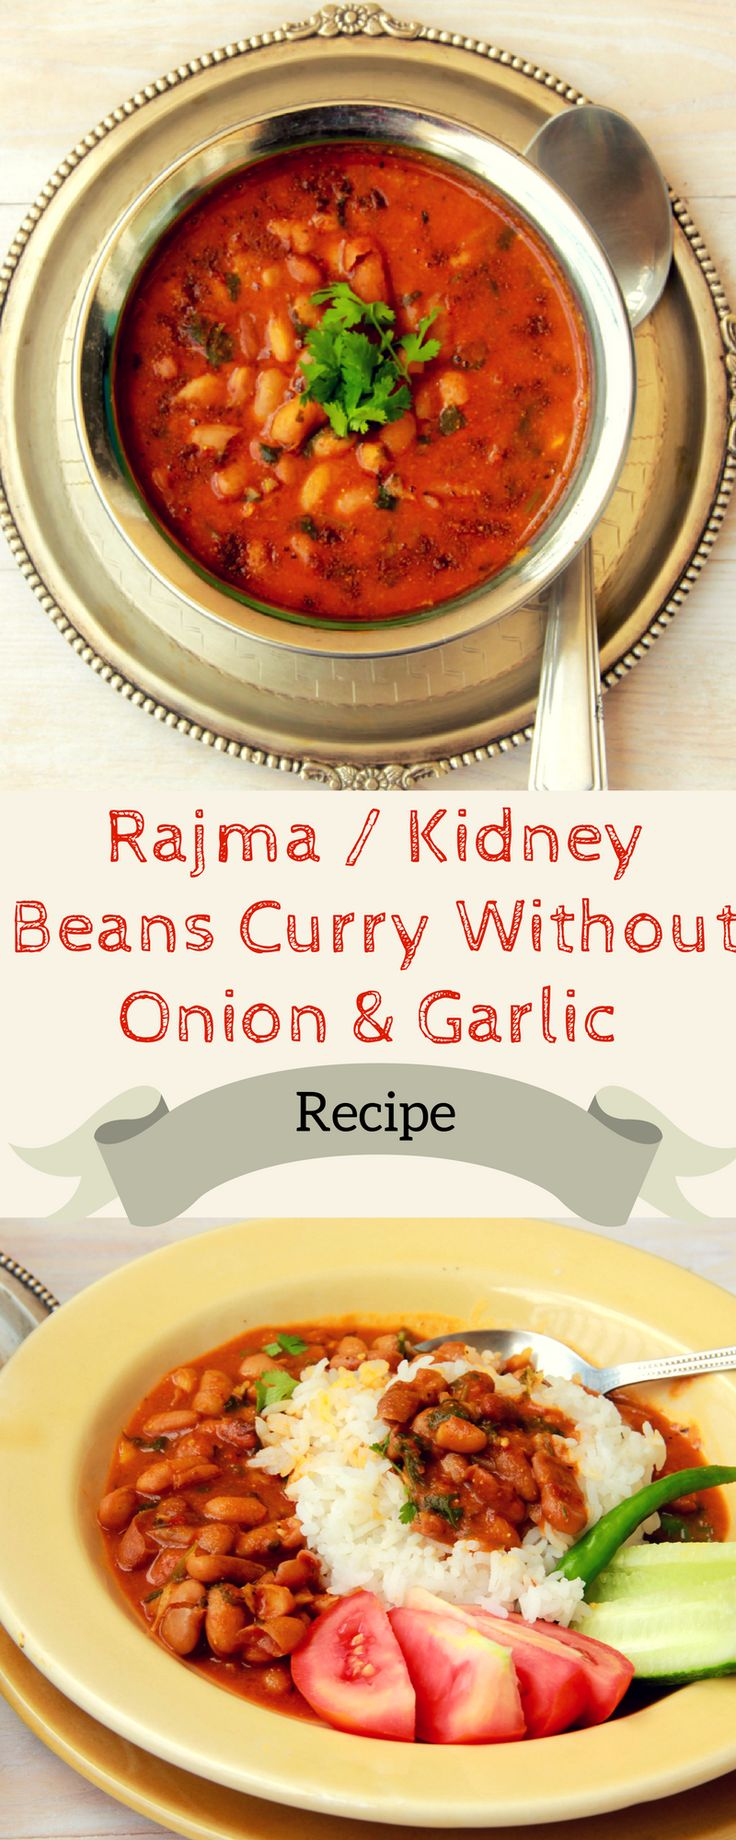 Punjabi Rajma Without Onion & Garlic A Recipe for Rajma / Red Kidney Bean Curry without onion and garlic A Navratri special. A jain Recipe for Rajma